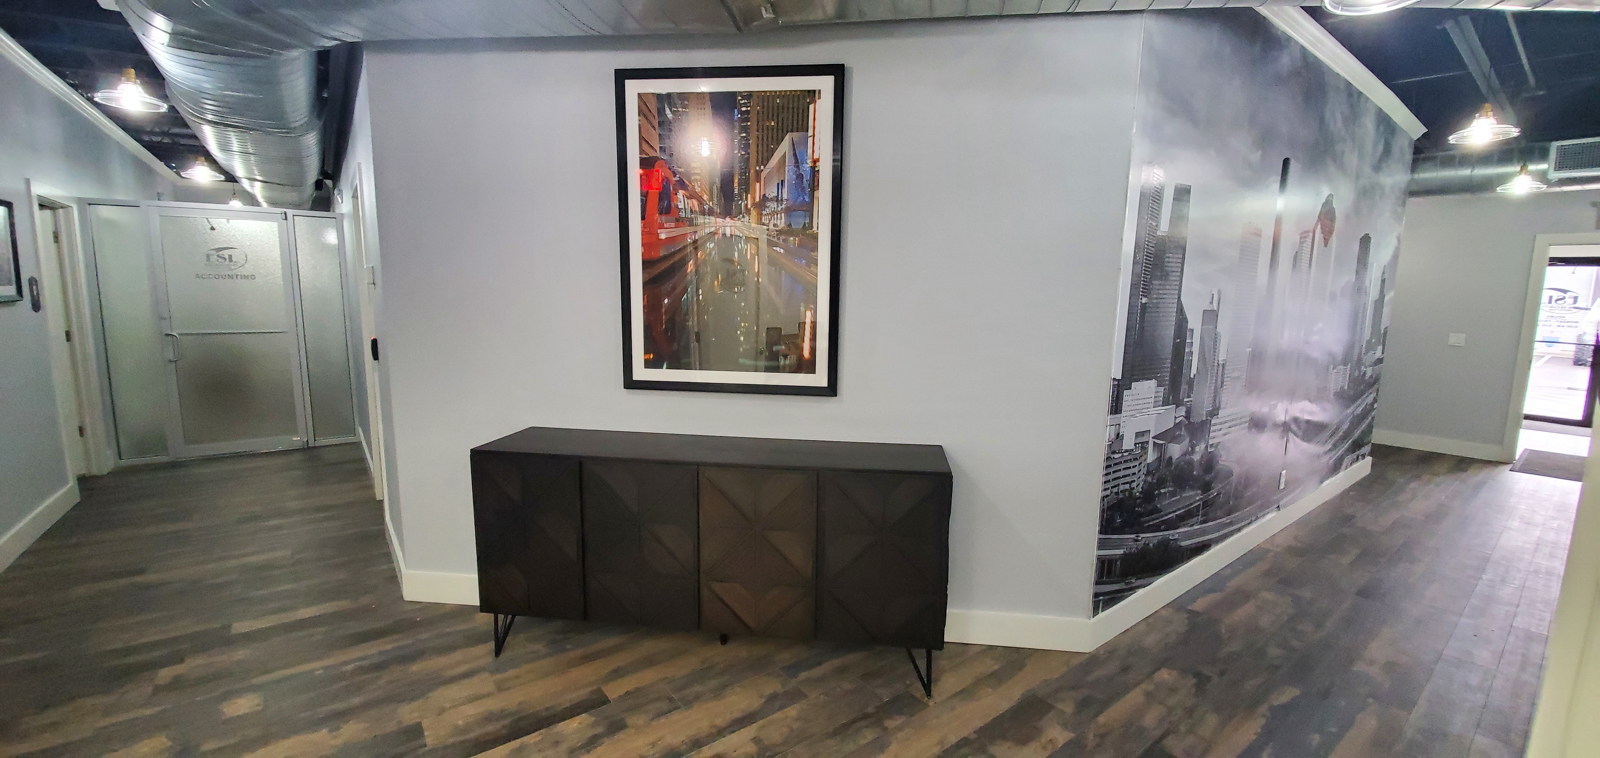 """A 30""""x45"""" fine art print of the Houston mass transit rail train as it passed by framed and installed at our client's office in..."""